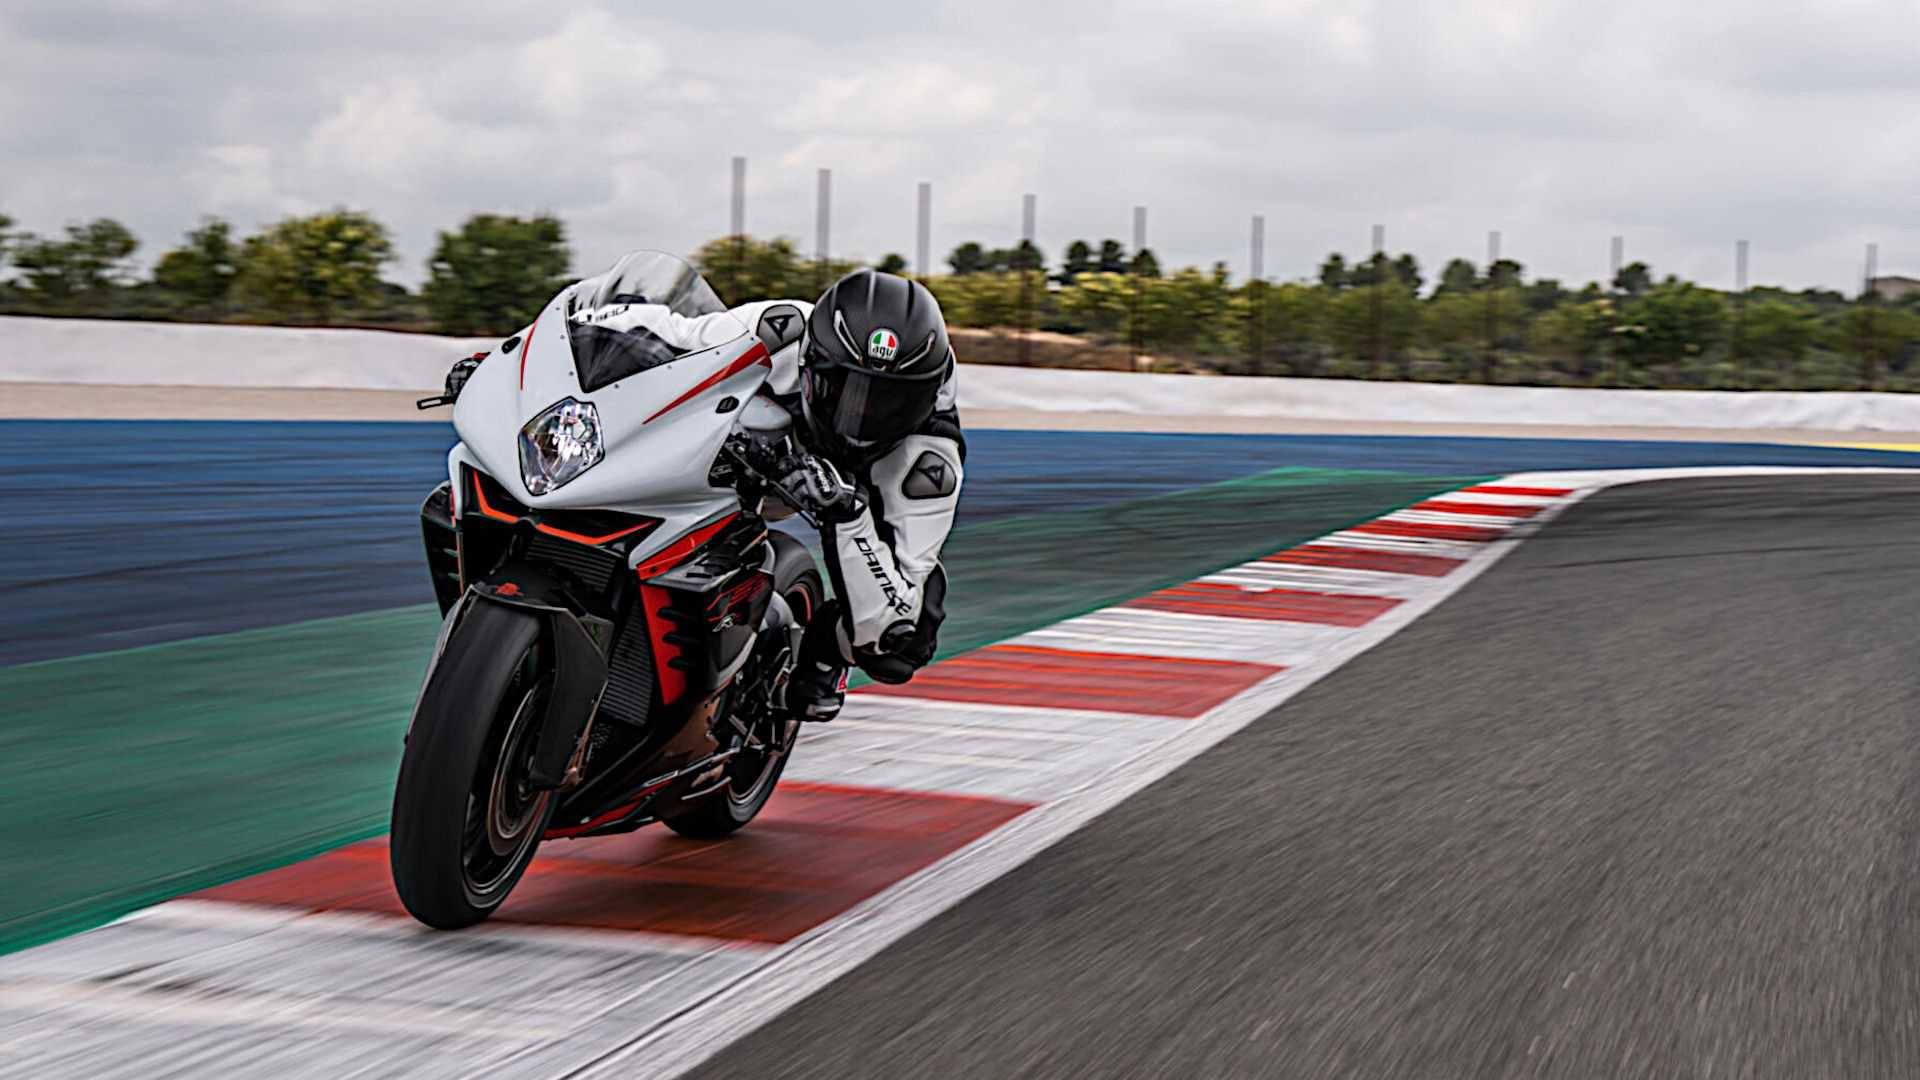 2022 MV Agusta F3 RR - Front Left Angle View on Track